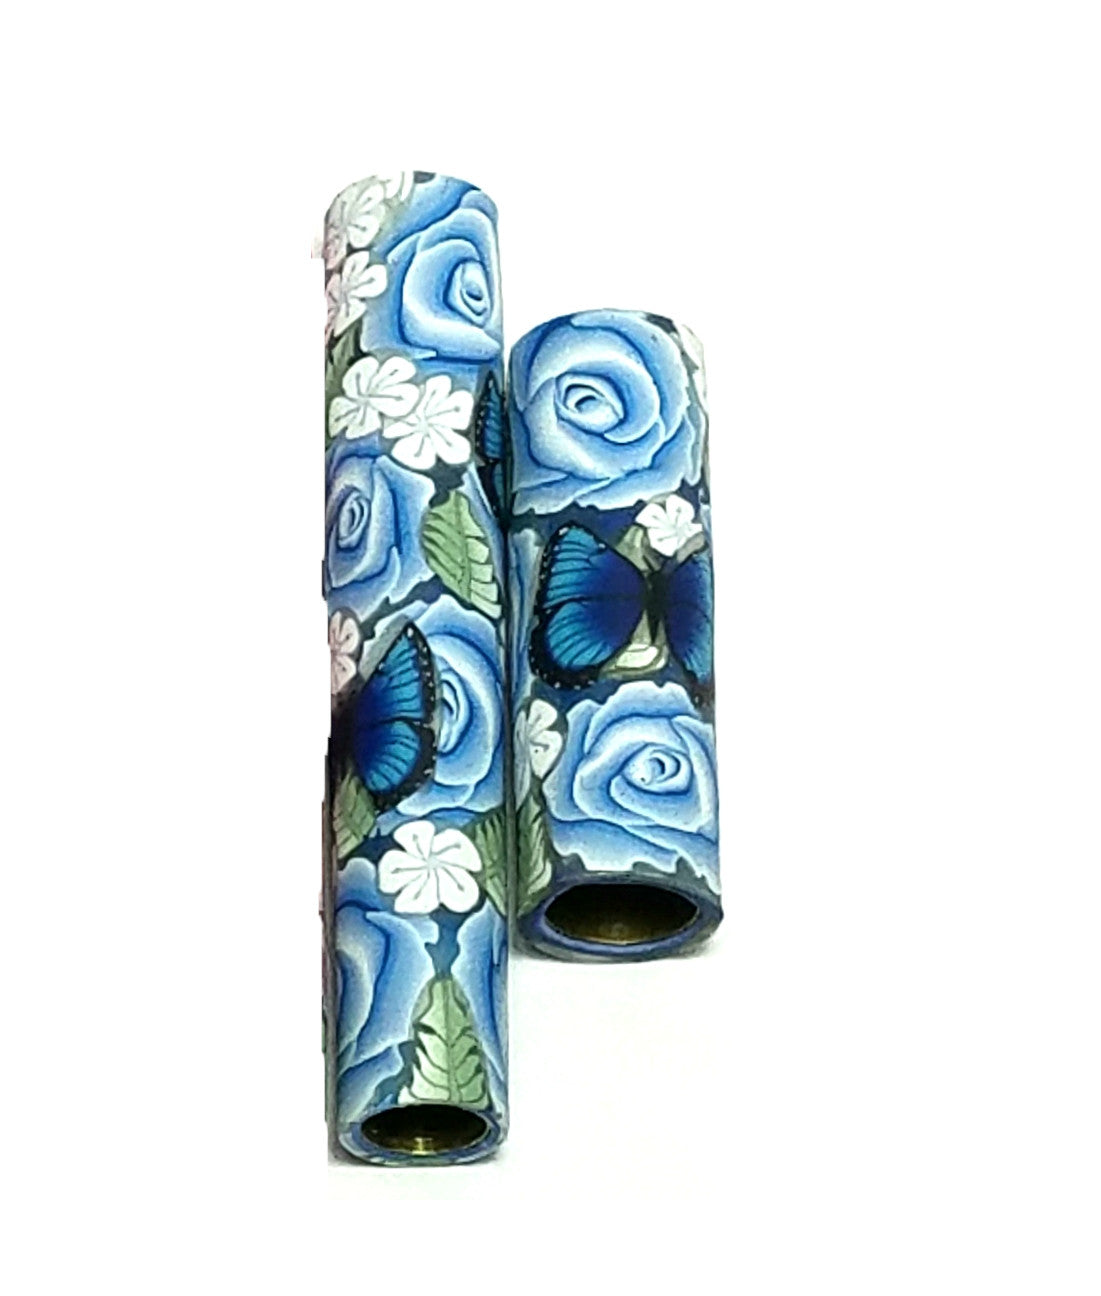 Roses & Blue Morpho Butterfly Blanks.  You Choose Your Blank Style & Rose Color